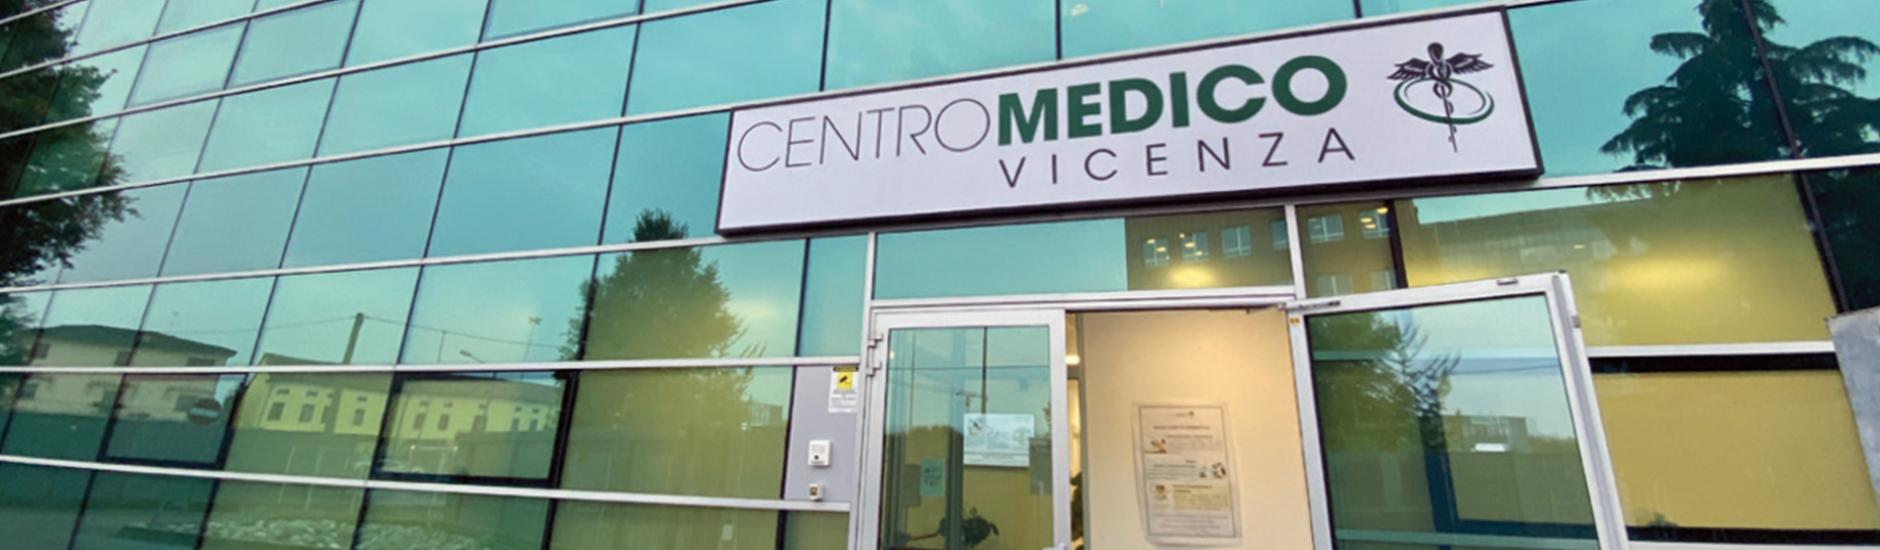 Mx_CS_Centro_Medico_Vicenza_header_1860x550